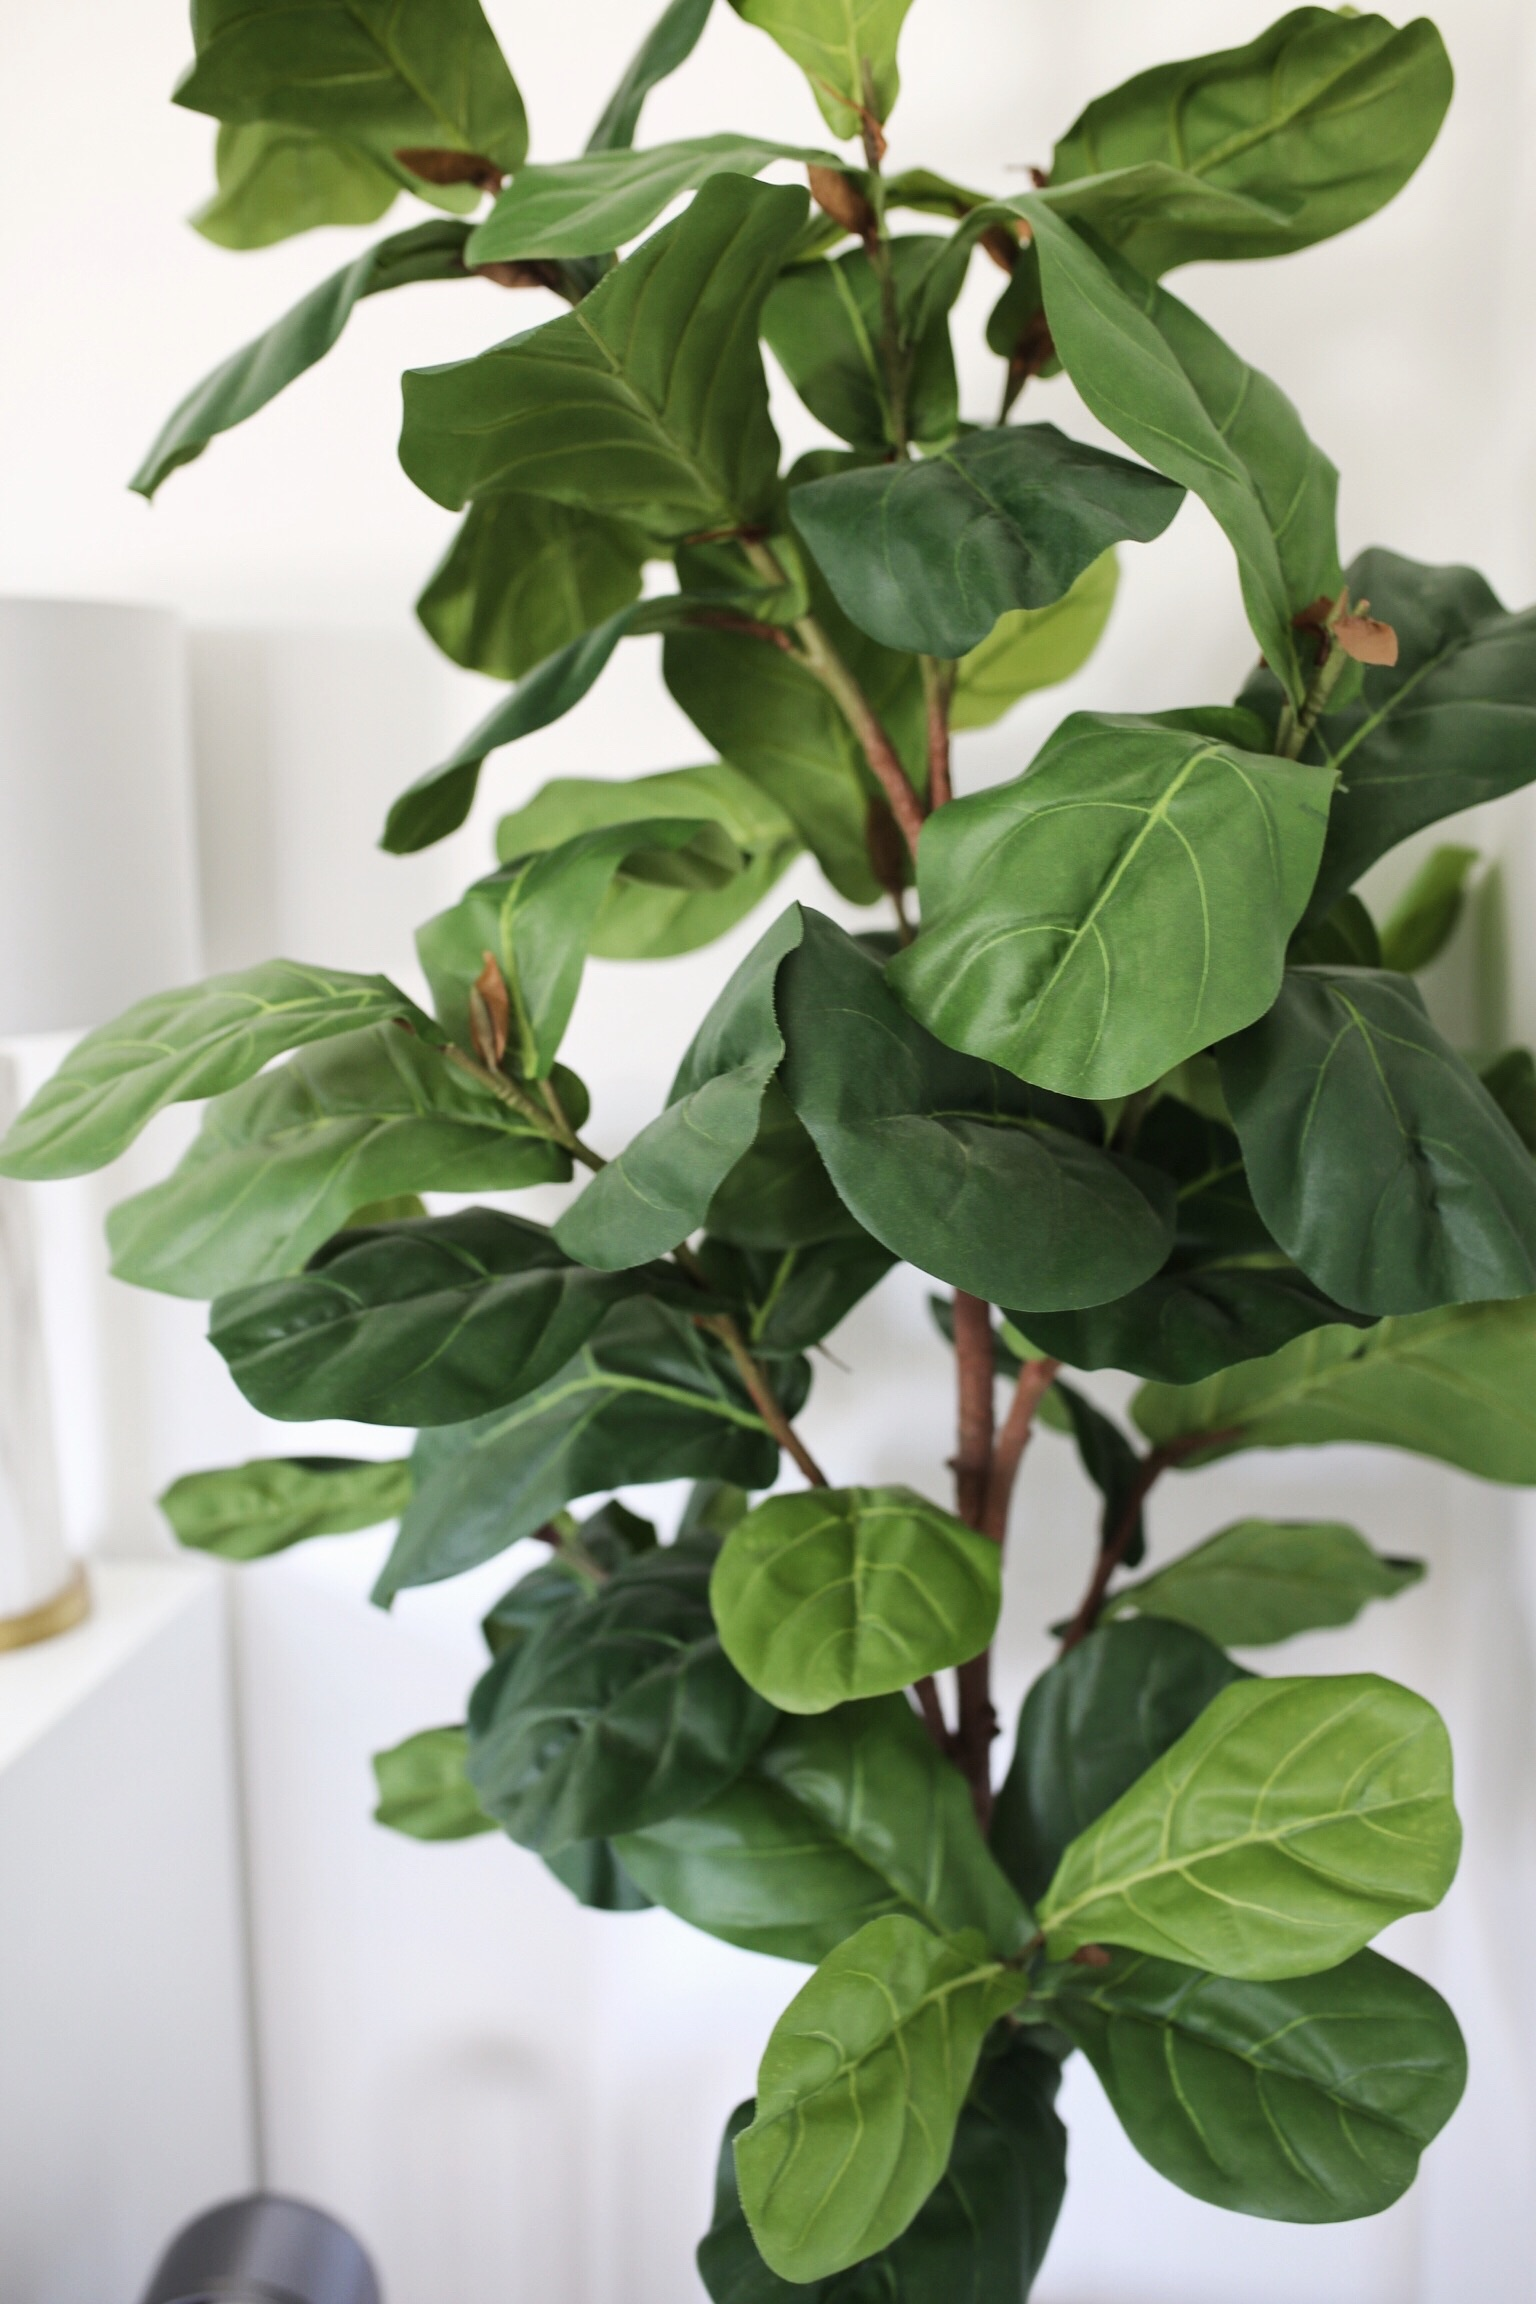 Cool Looking Plants The Best Faux Plants For The Home And Where To Buy Them